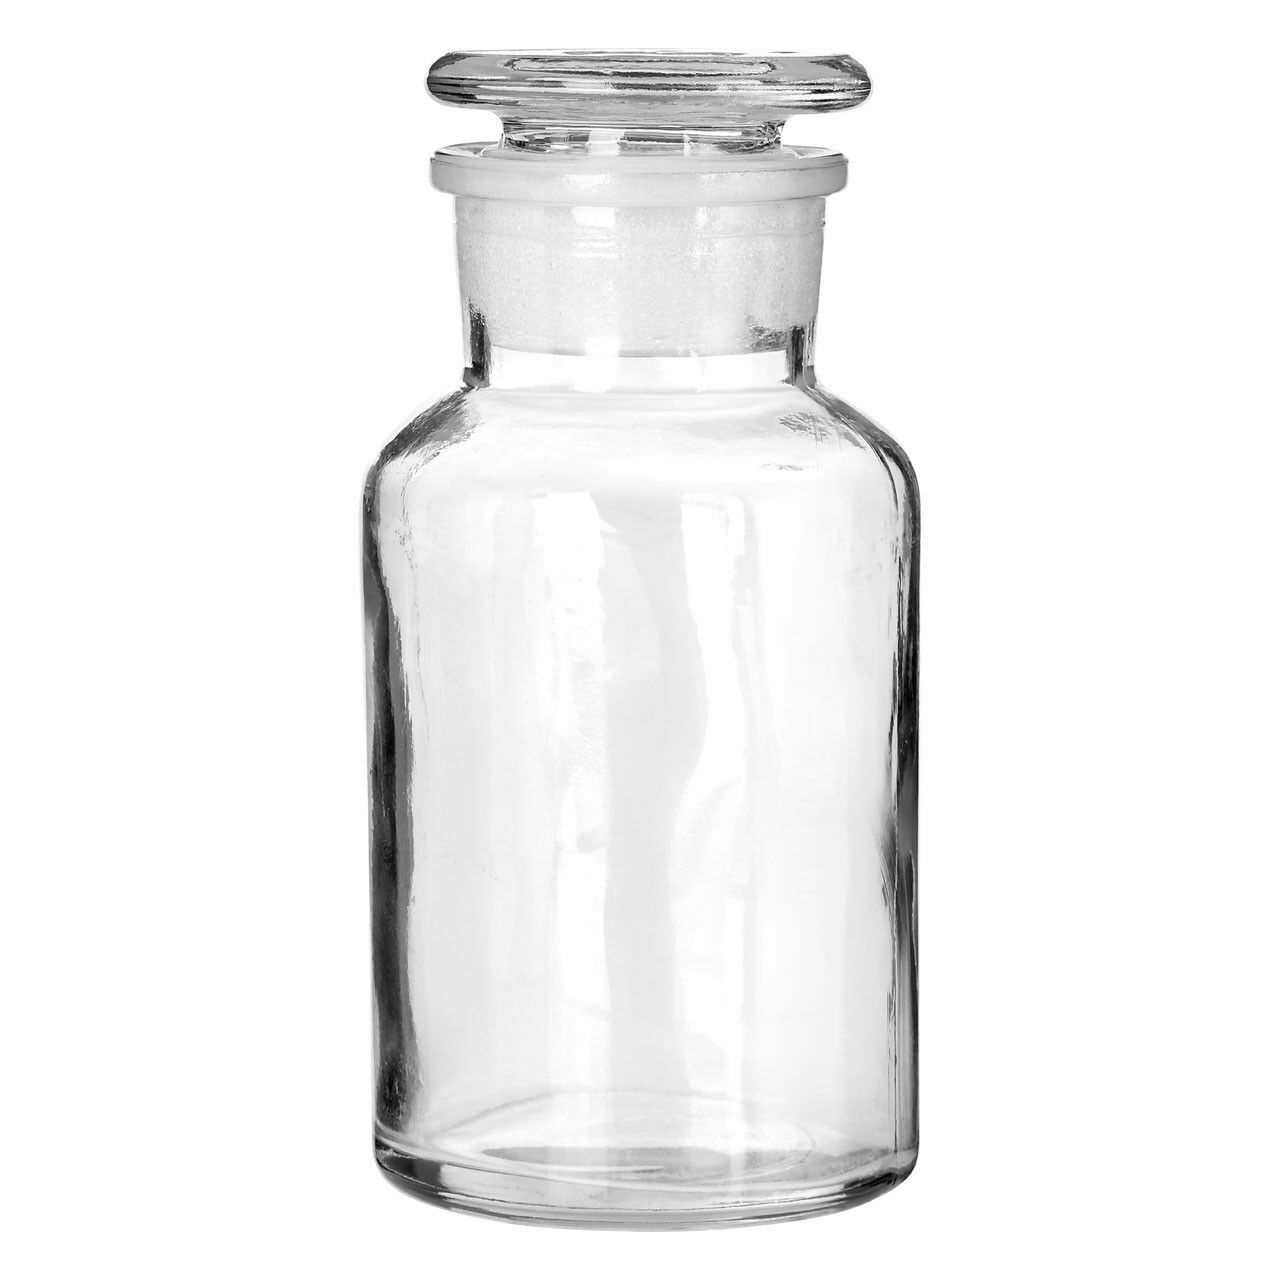 Apothecary Style Gl Storage Jar Suitable For Storing Small Items In The Bathroom